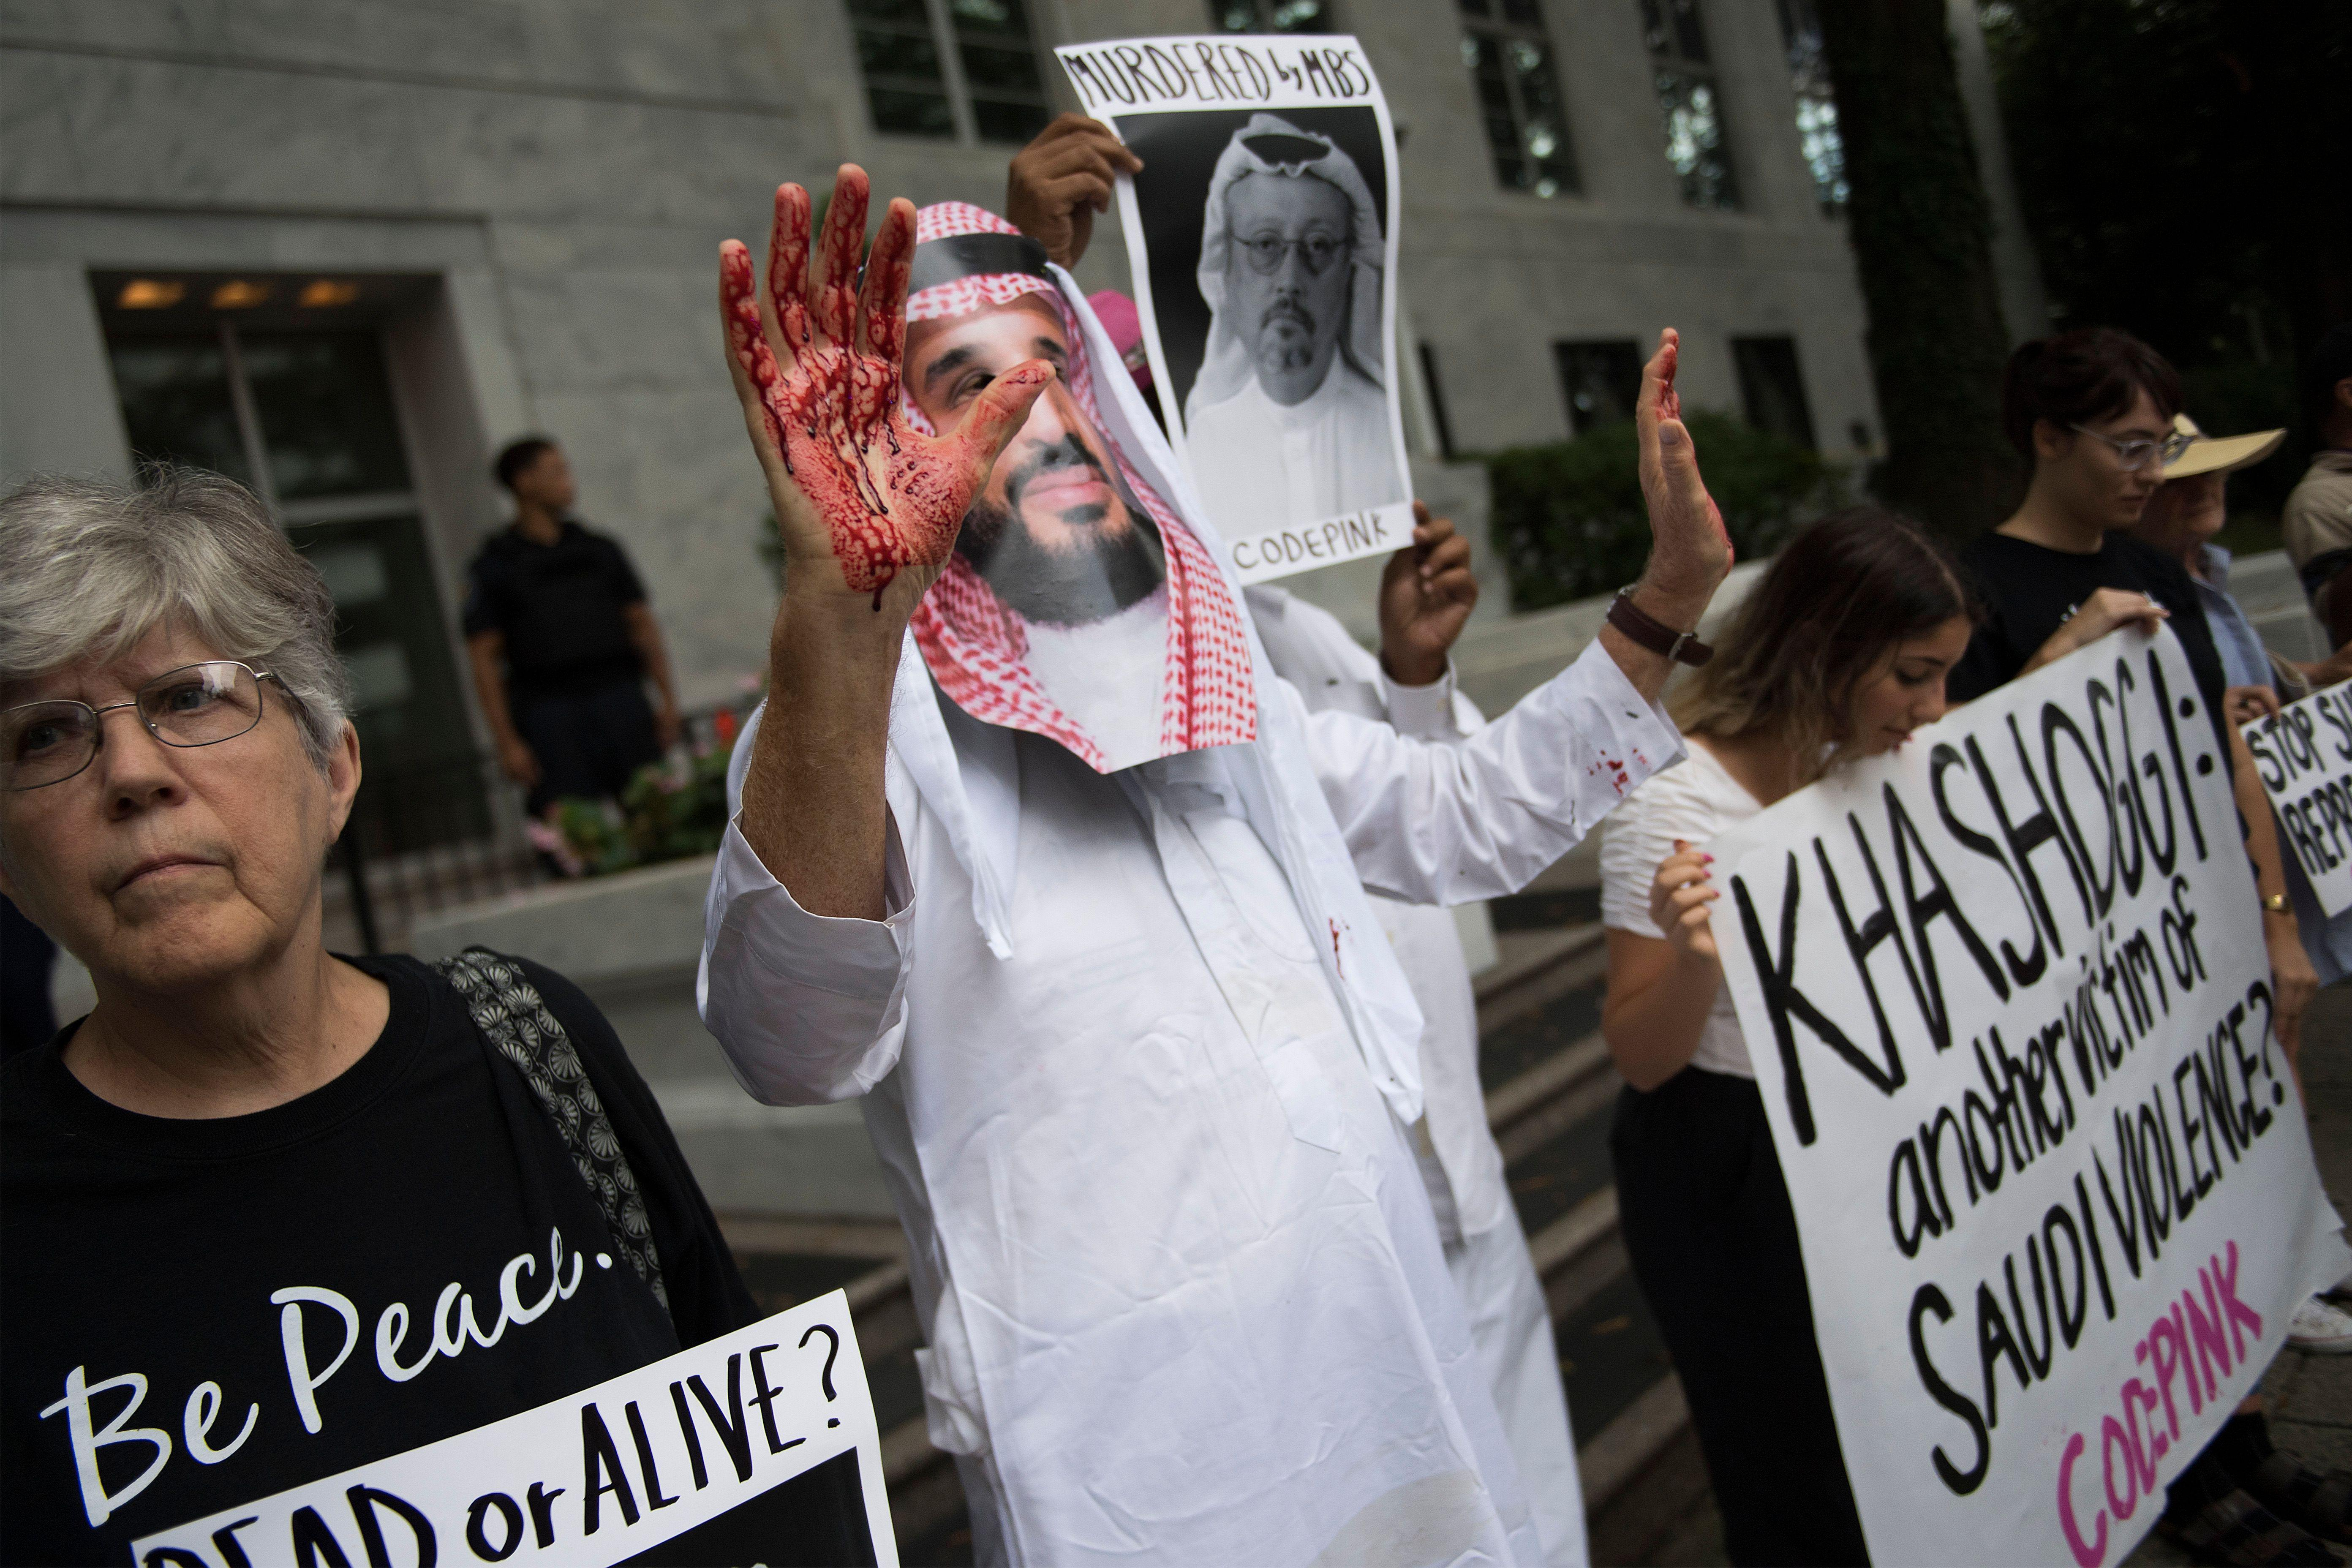 A demonstrator dressed as Saudi Arabian Crown Prince Mohammed bin Salman (C) with blood on his hands protests outside the Saudi Embassy in Washington, D.C. on October 8, 2018.